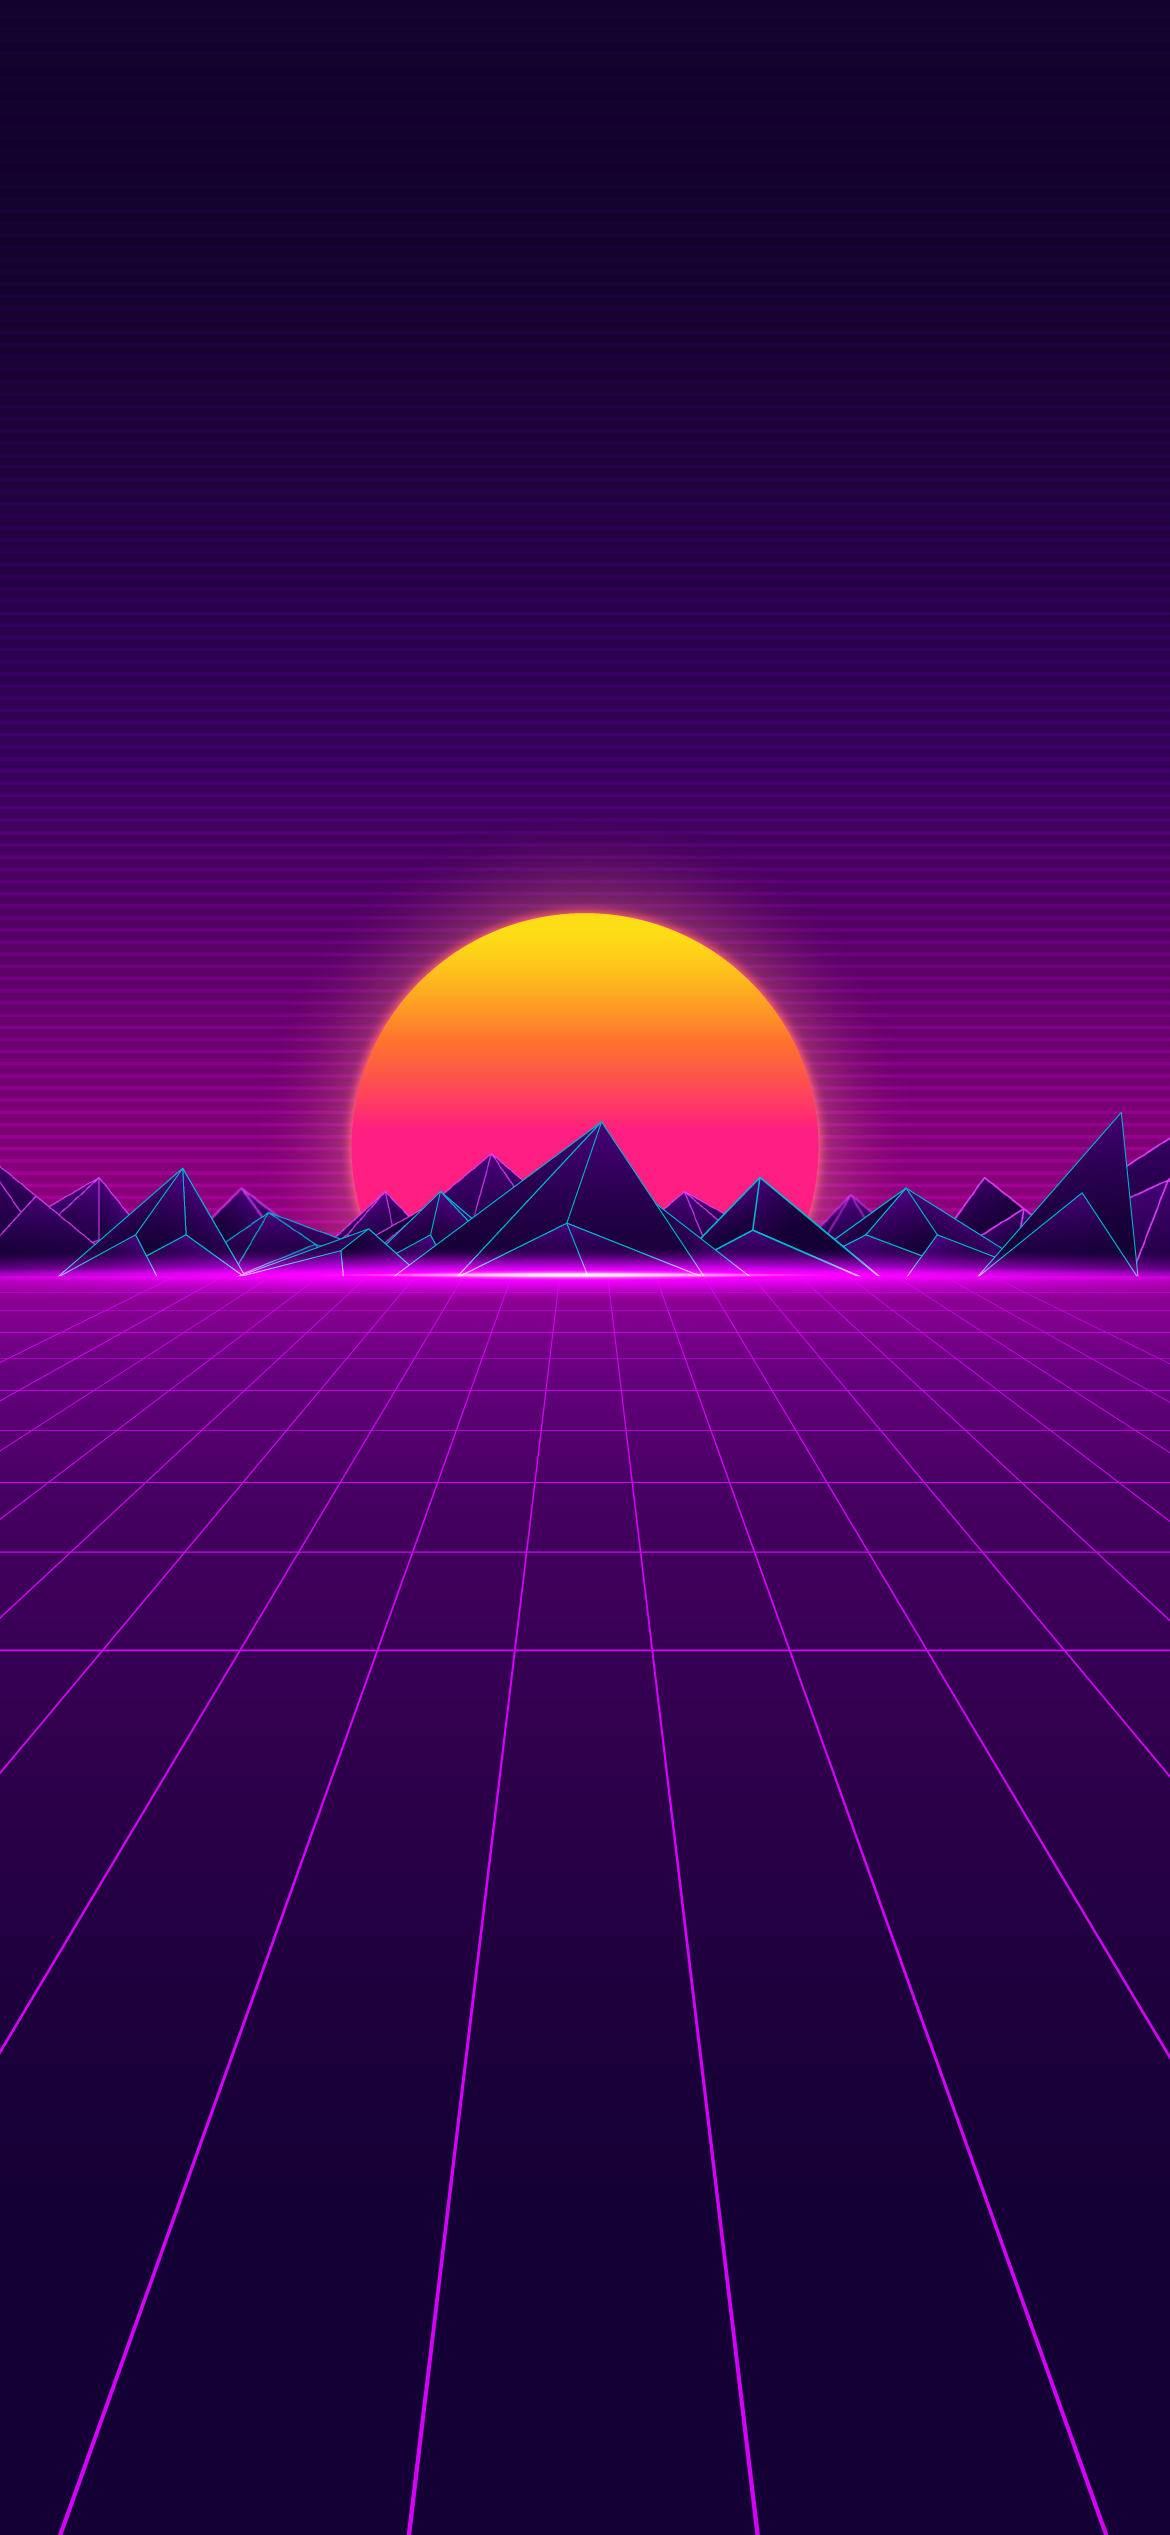 futuristic, synthwave, landscape synth retrowave